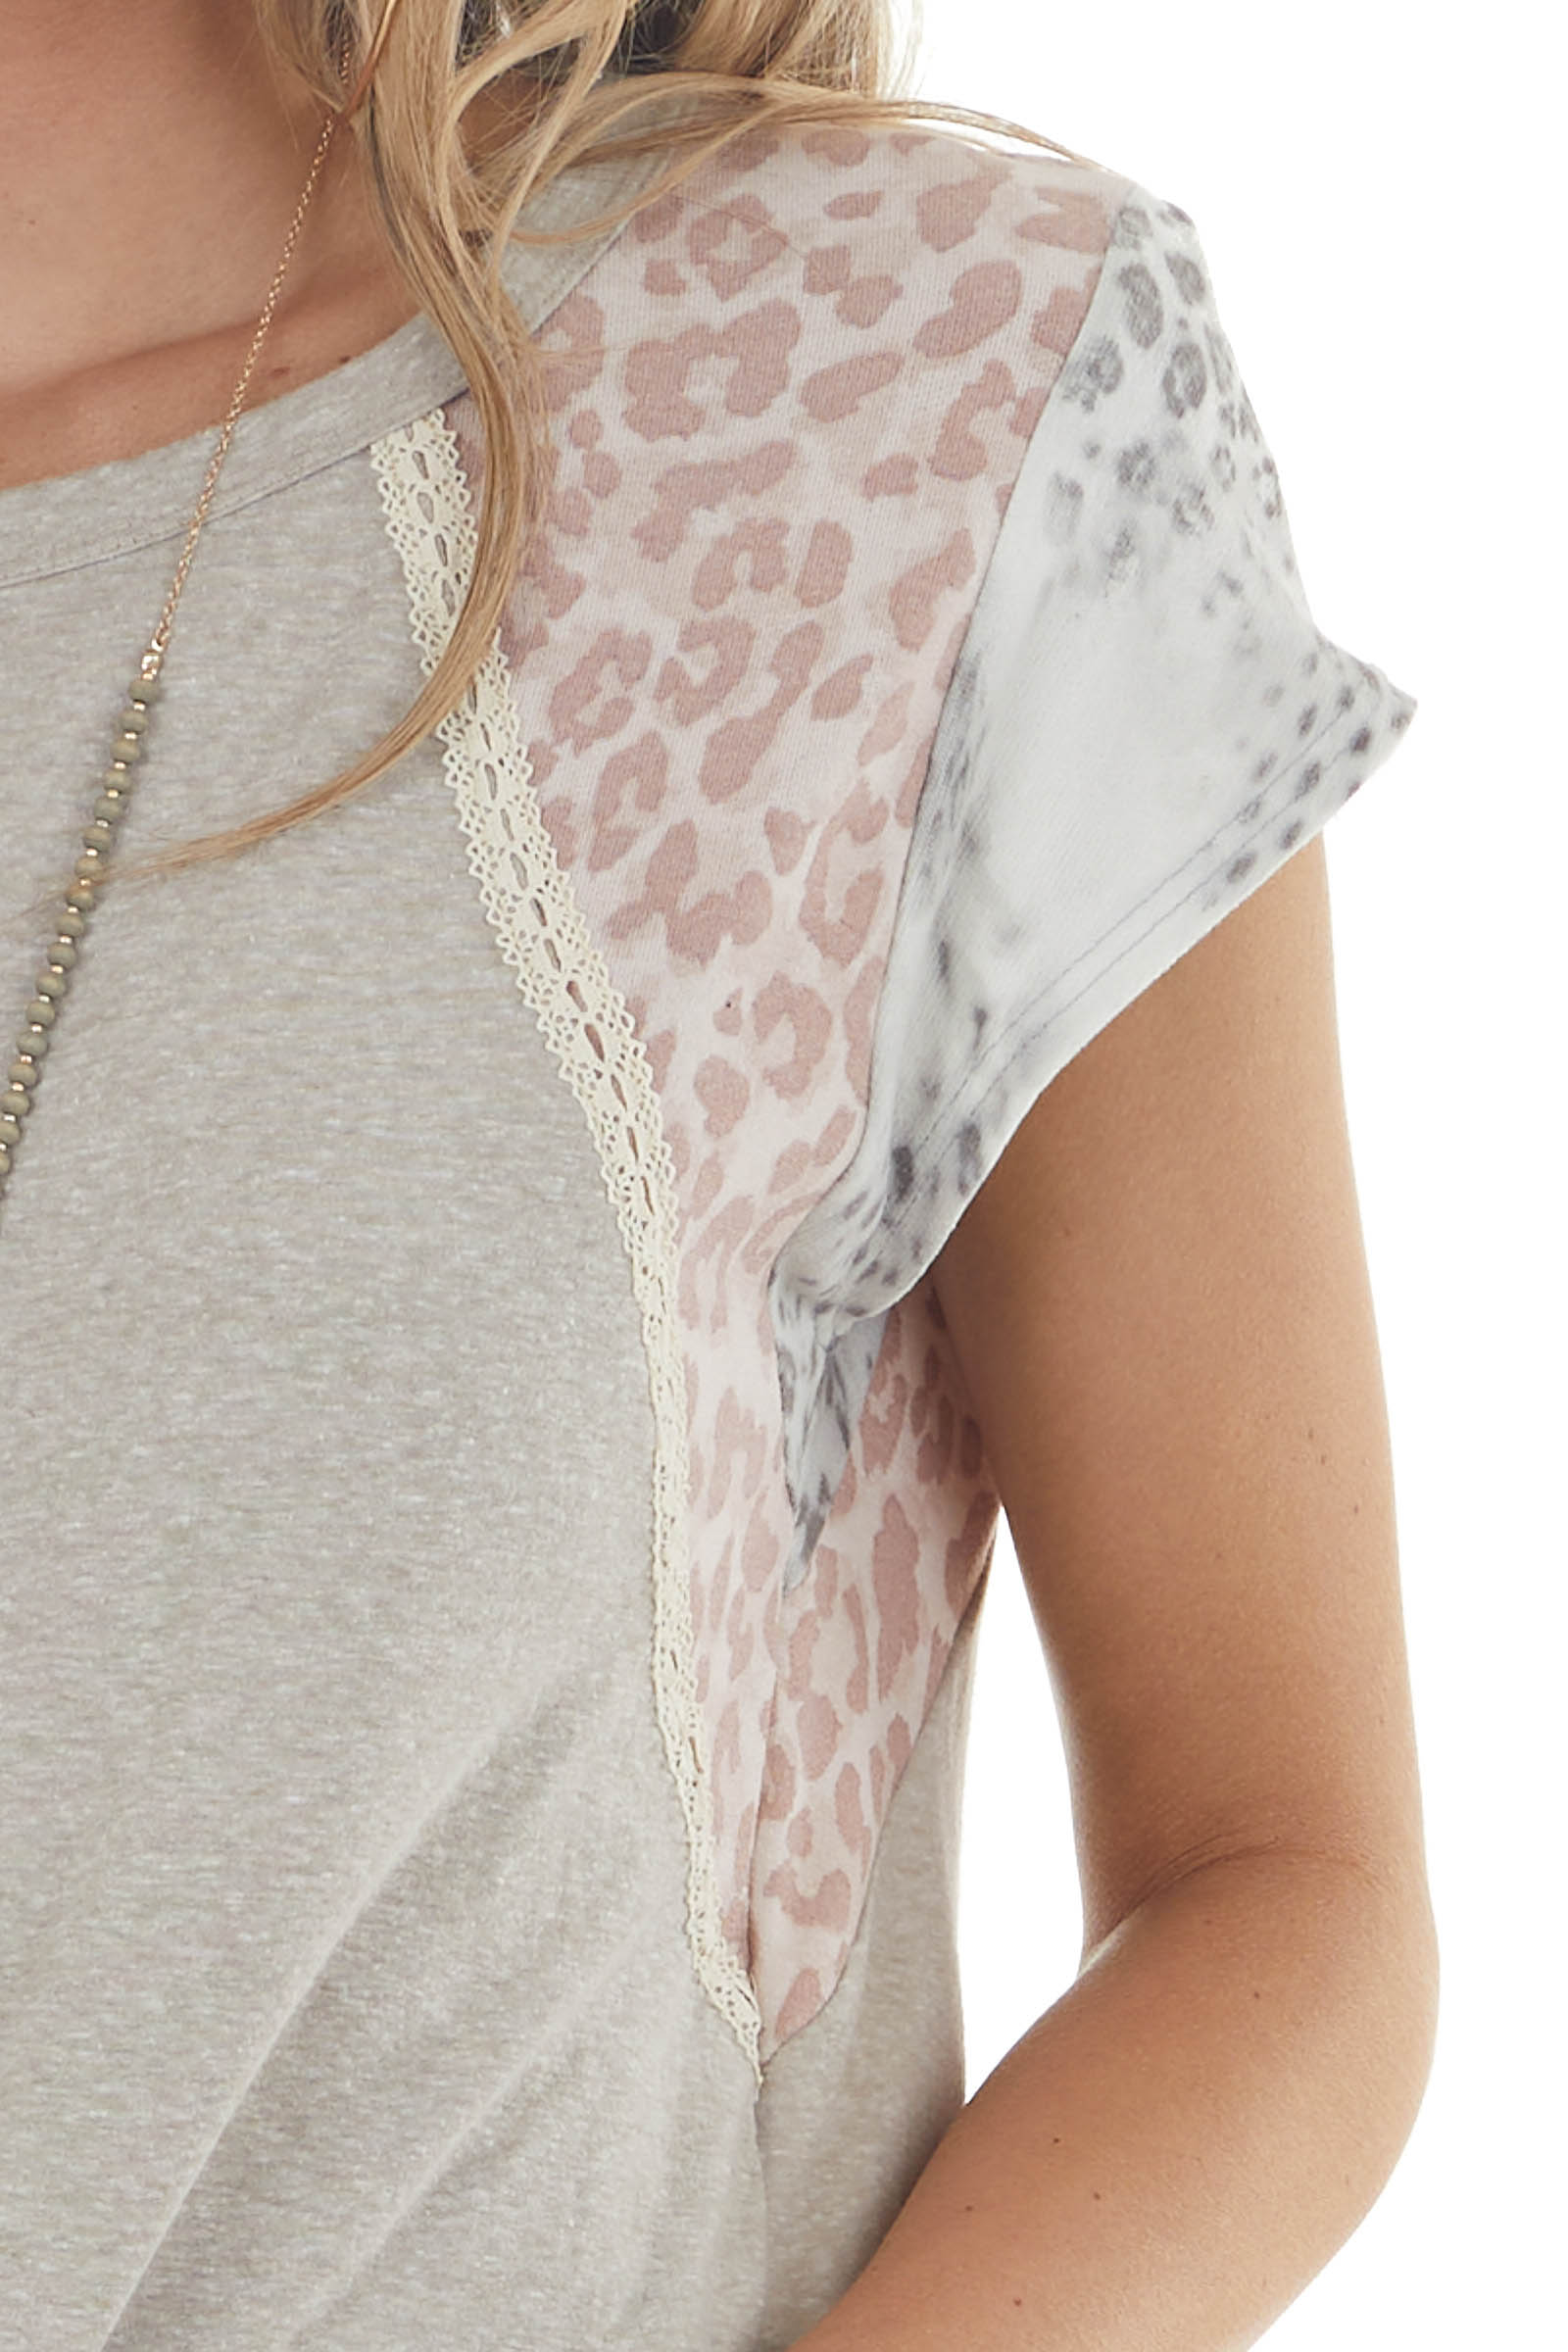 Oatmeal Leopard Print Short Sleeve Knit Top with Lace Detail